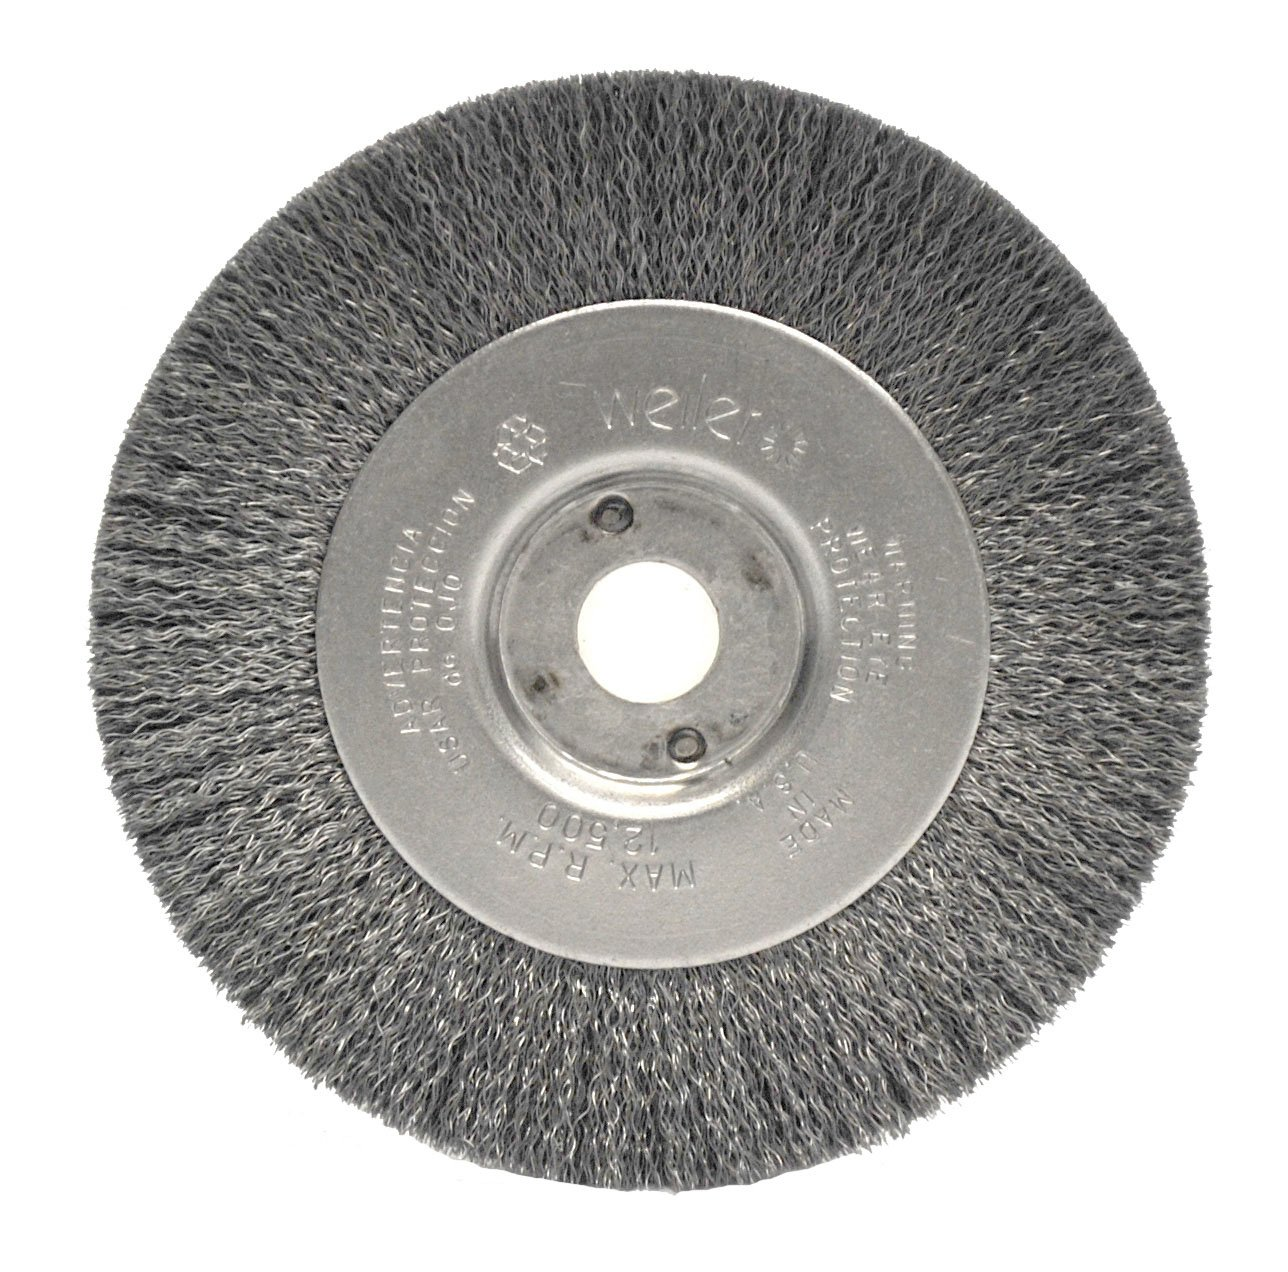 Weiler 0154 Narrow Face Crimped Wire Wheel, 4'', 0.06'' Stainless Steel Fill, 1/2''-3/8'' Arbor Hole (Pack of 2)